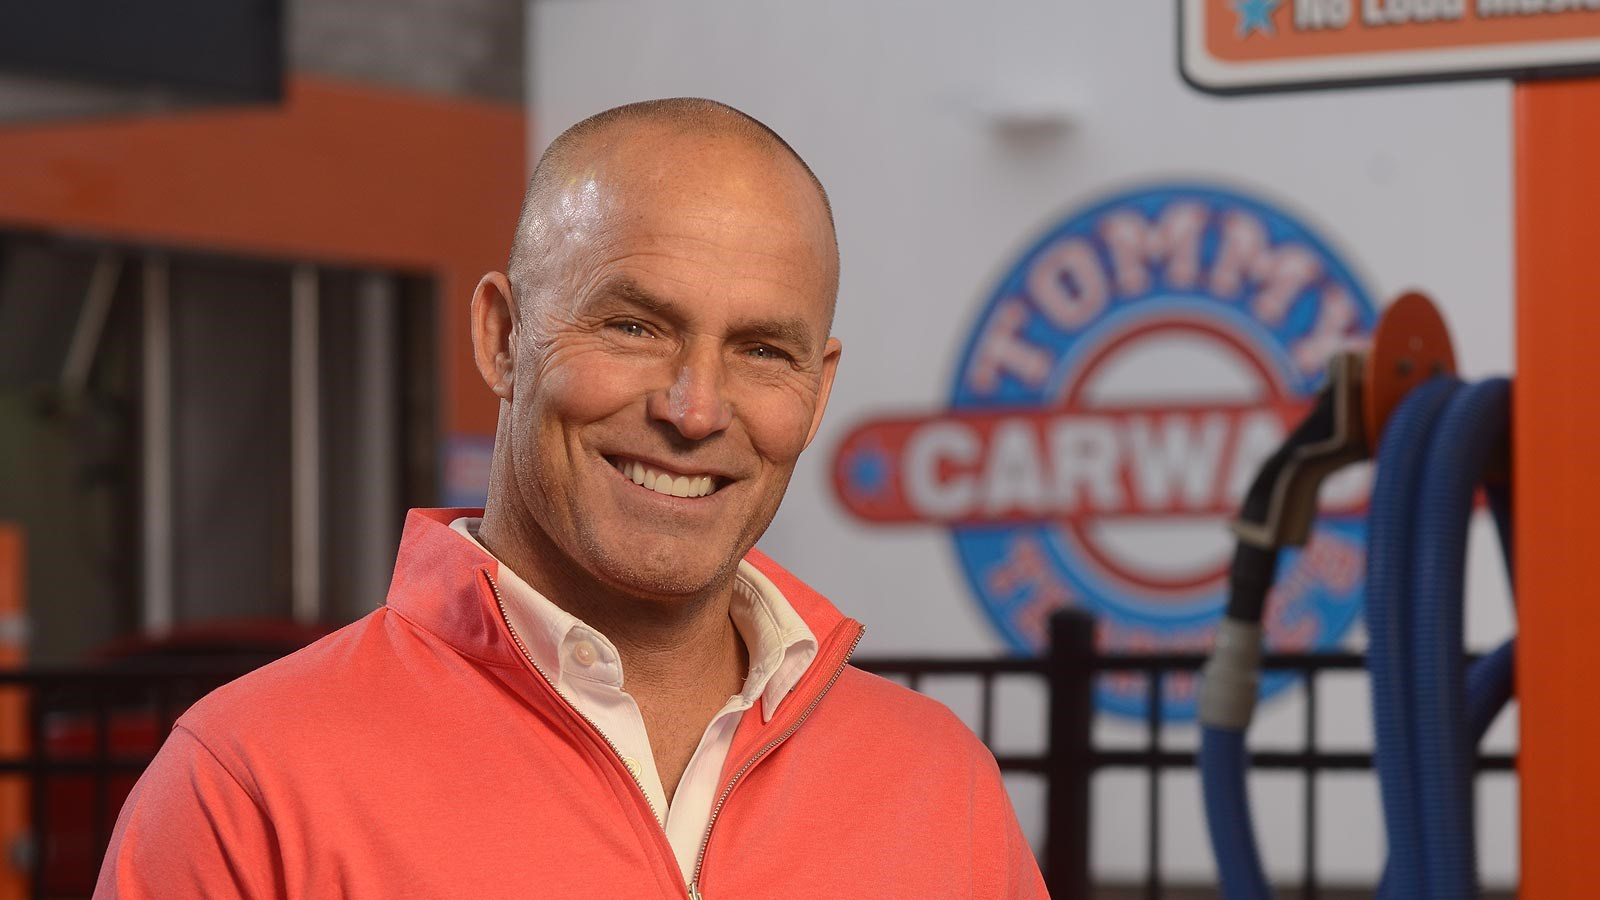 Photo of Tom Miller, President of The Car Wash Companies